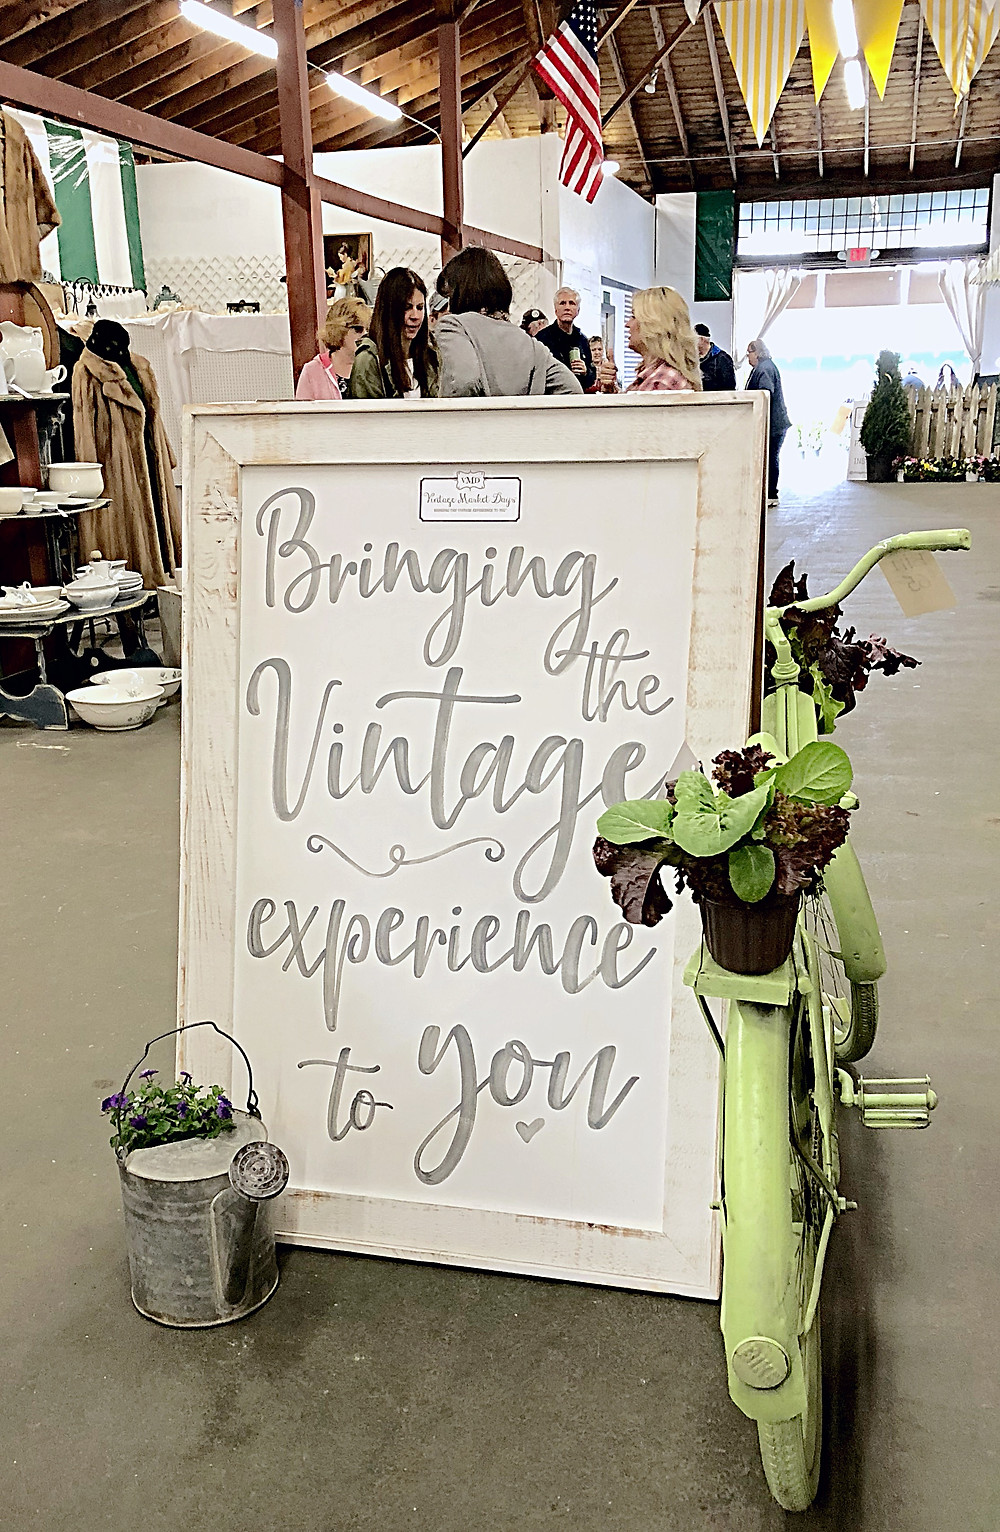 Bringing the Vintage experience to You!